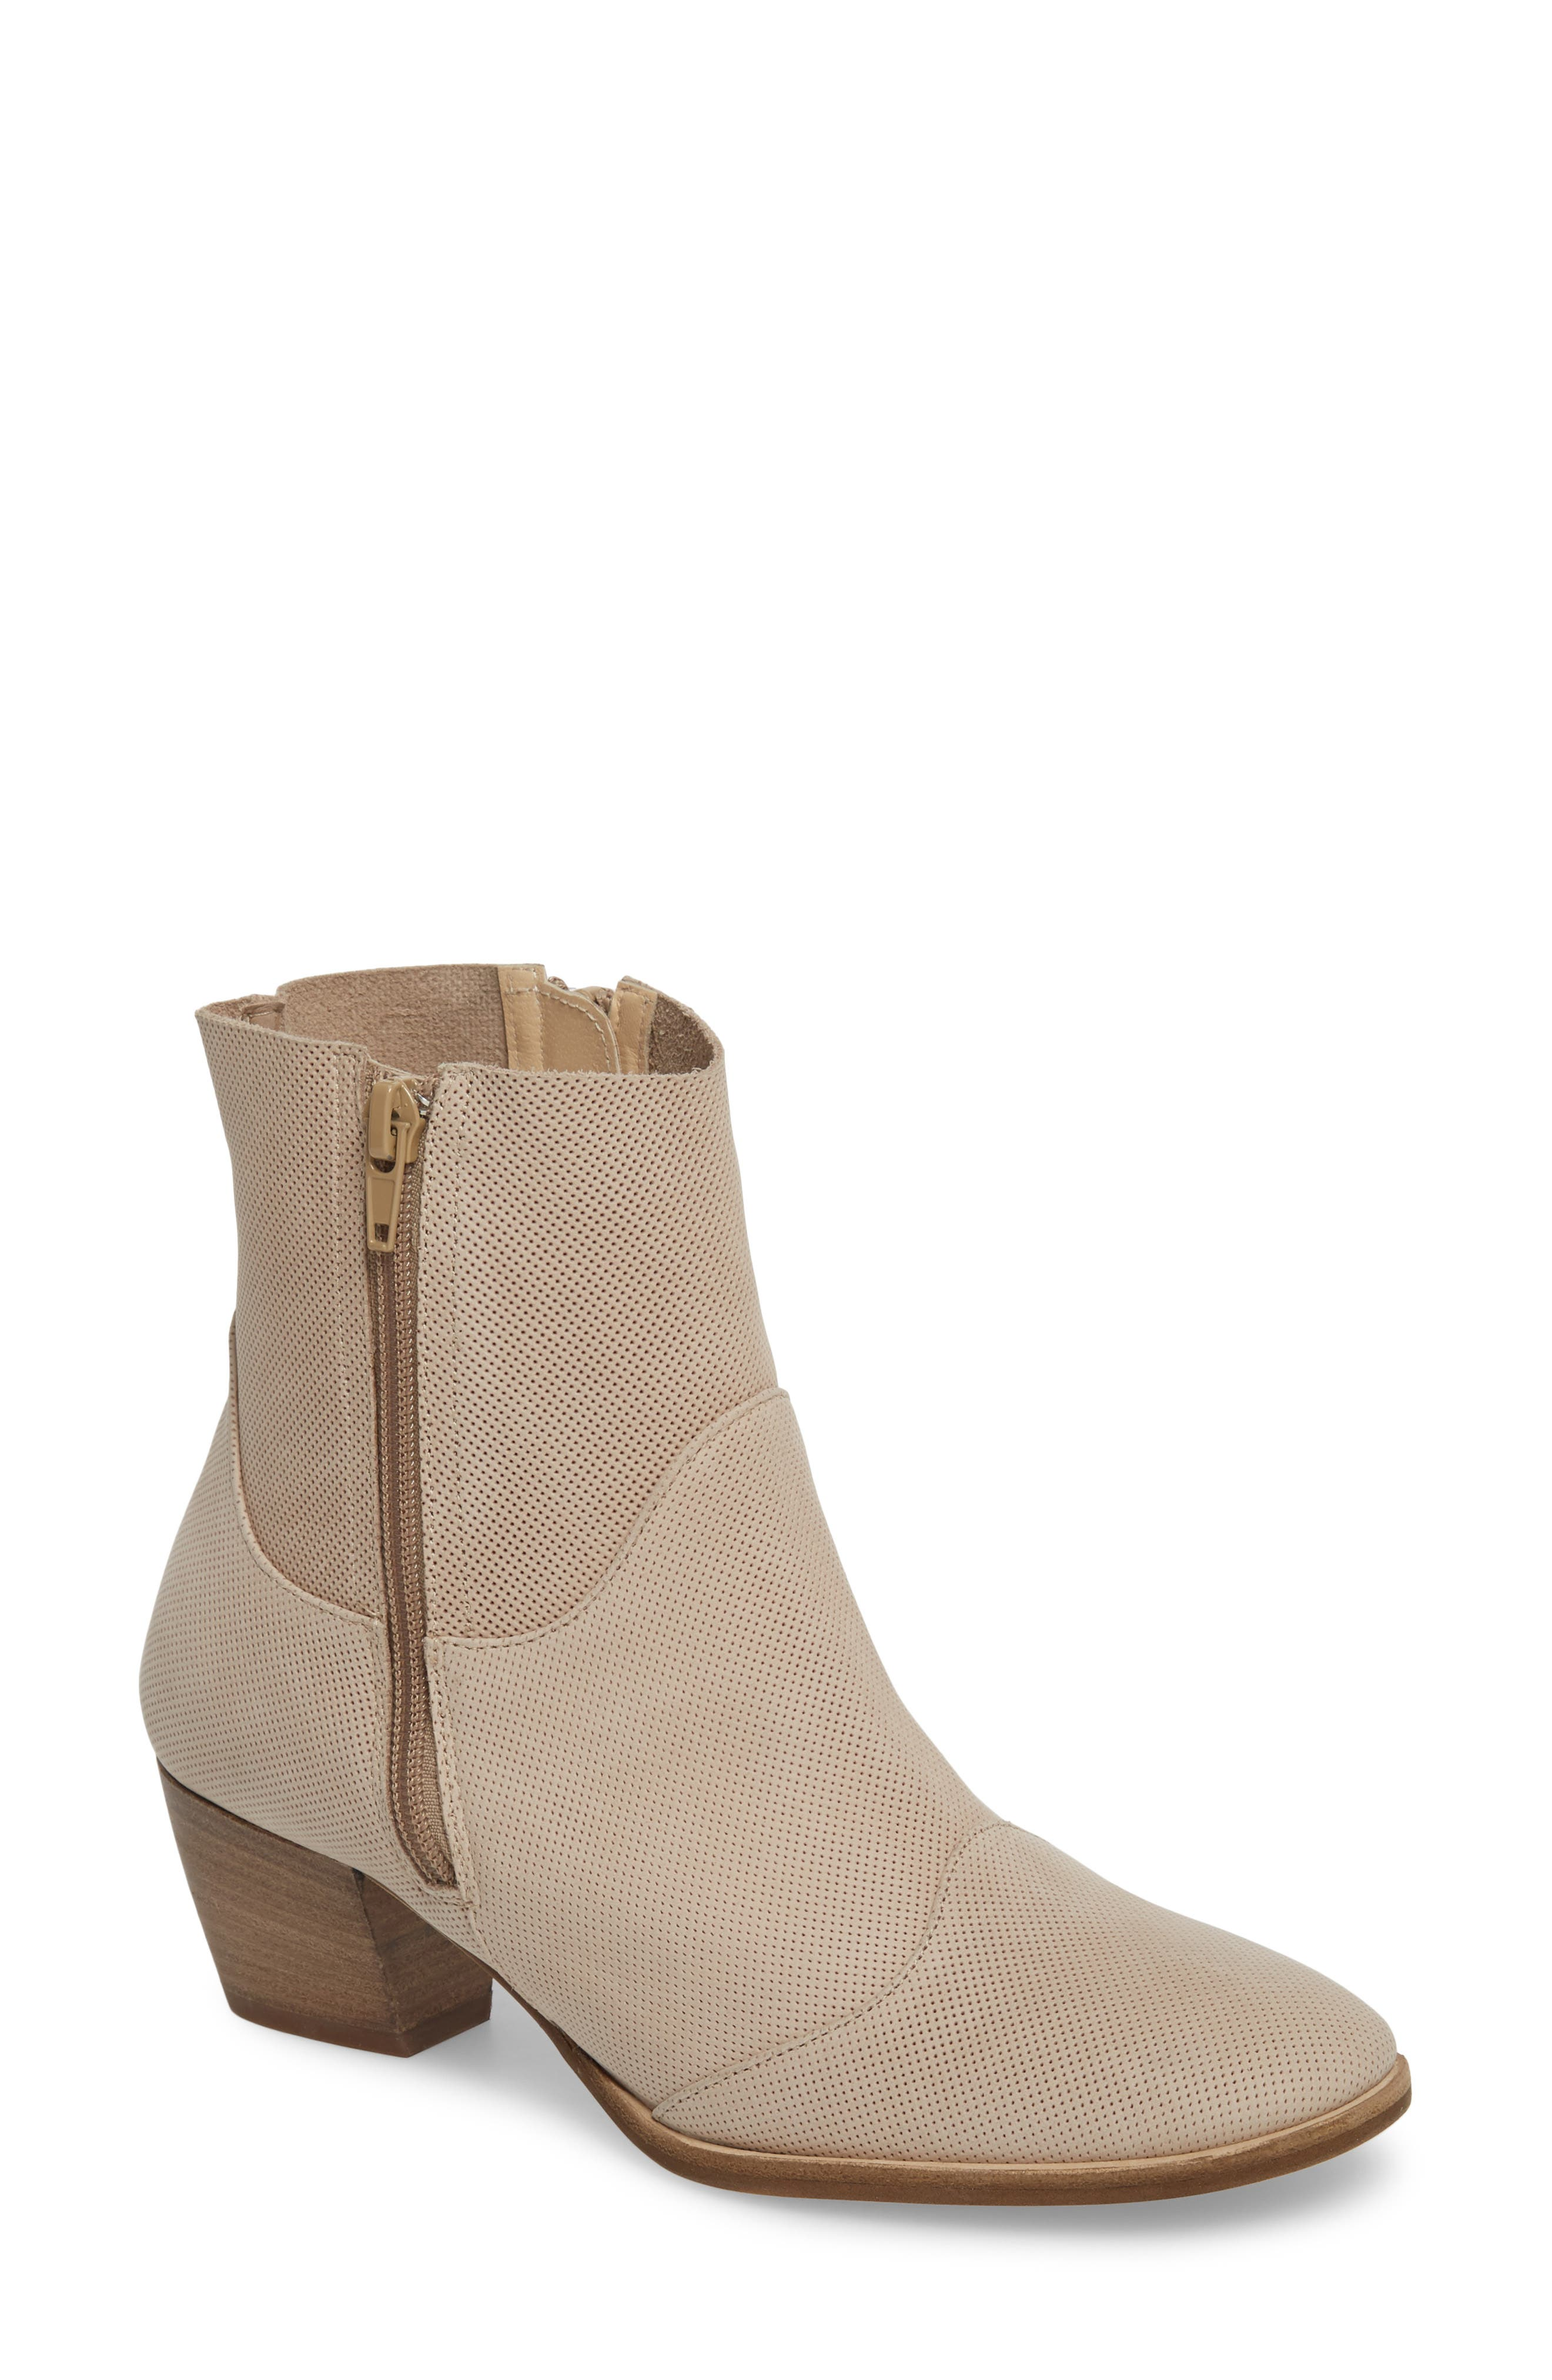 Robin Bootie, Main, color, NATURAL LEATHER